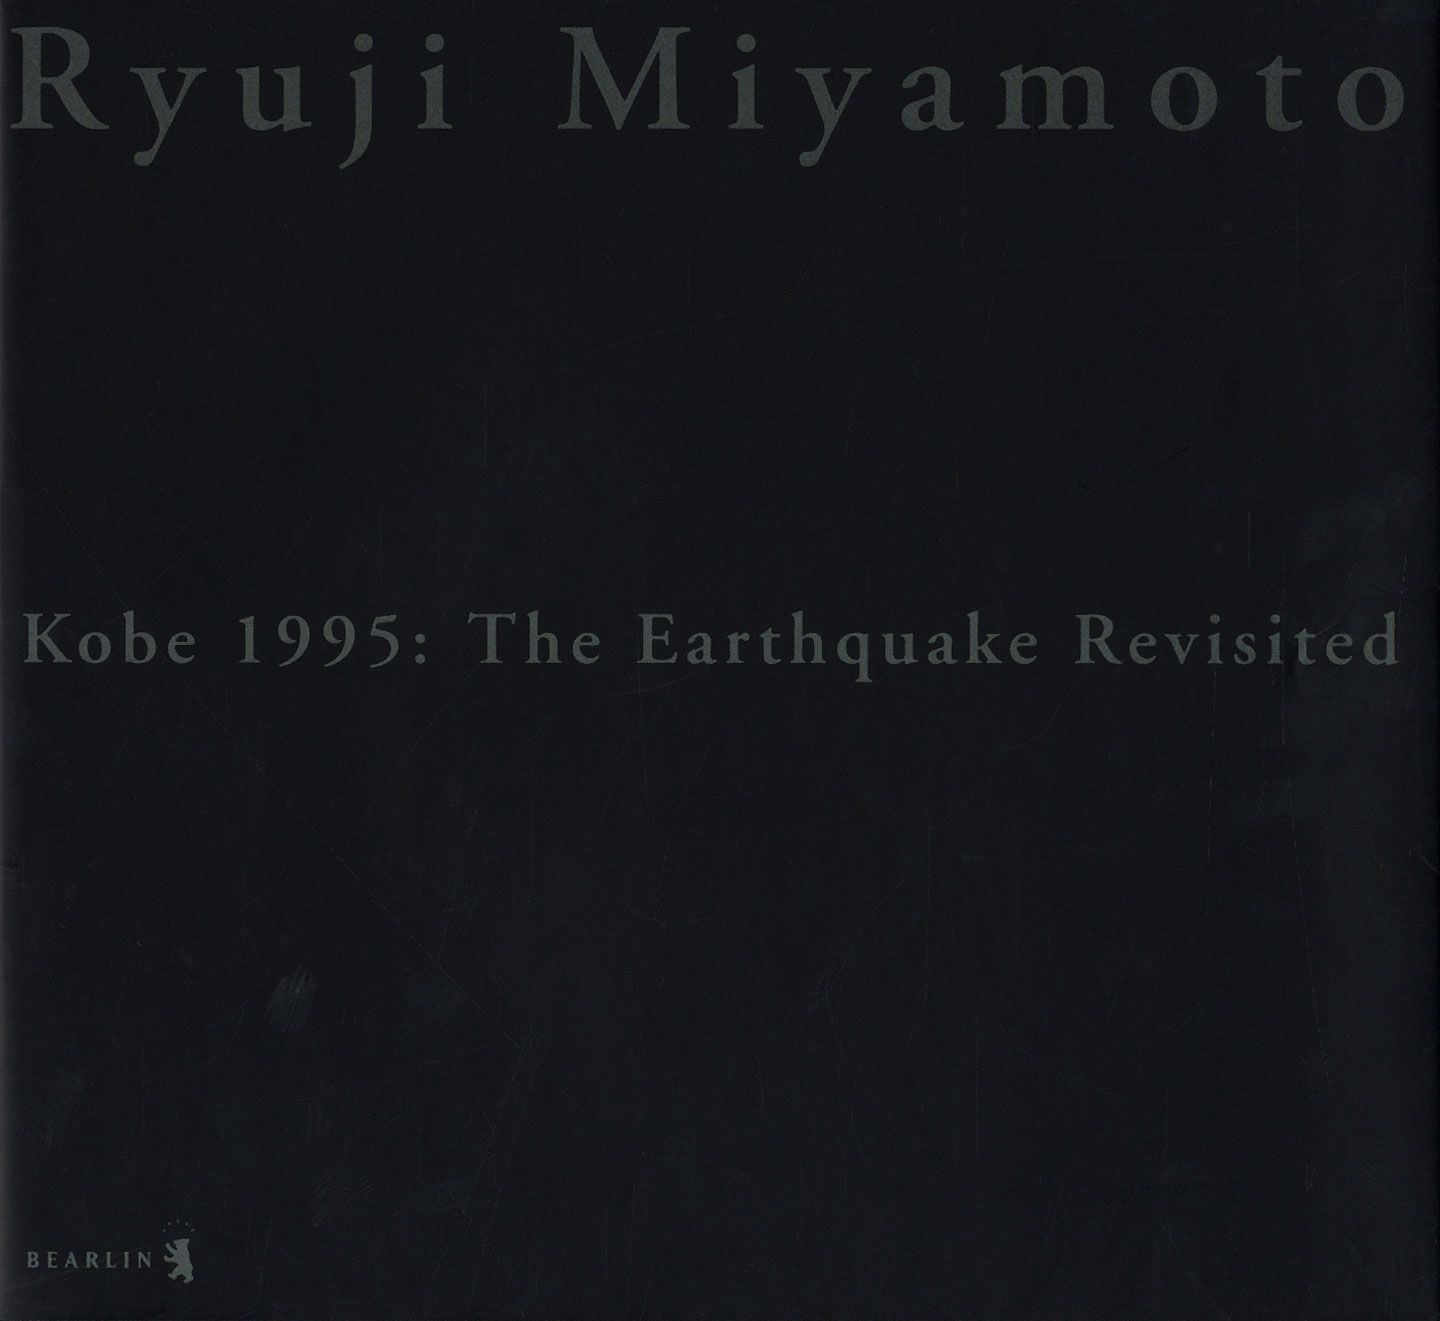 Ryuji Miyamoto: Kobe 1995: The Earthquake Revisited (First Edition) [SIGNED]